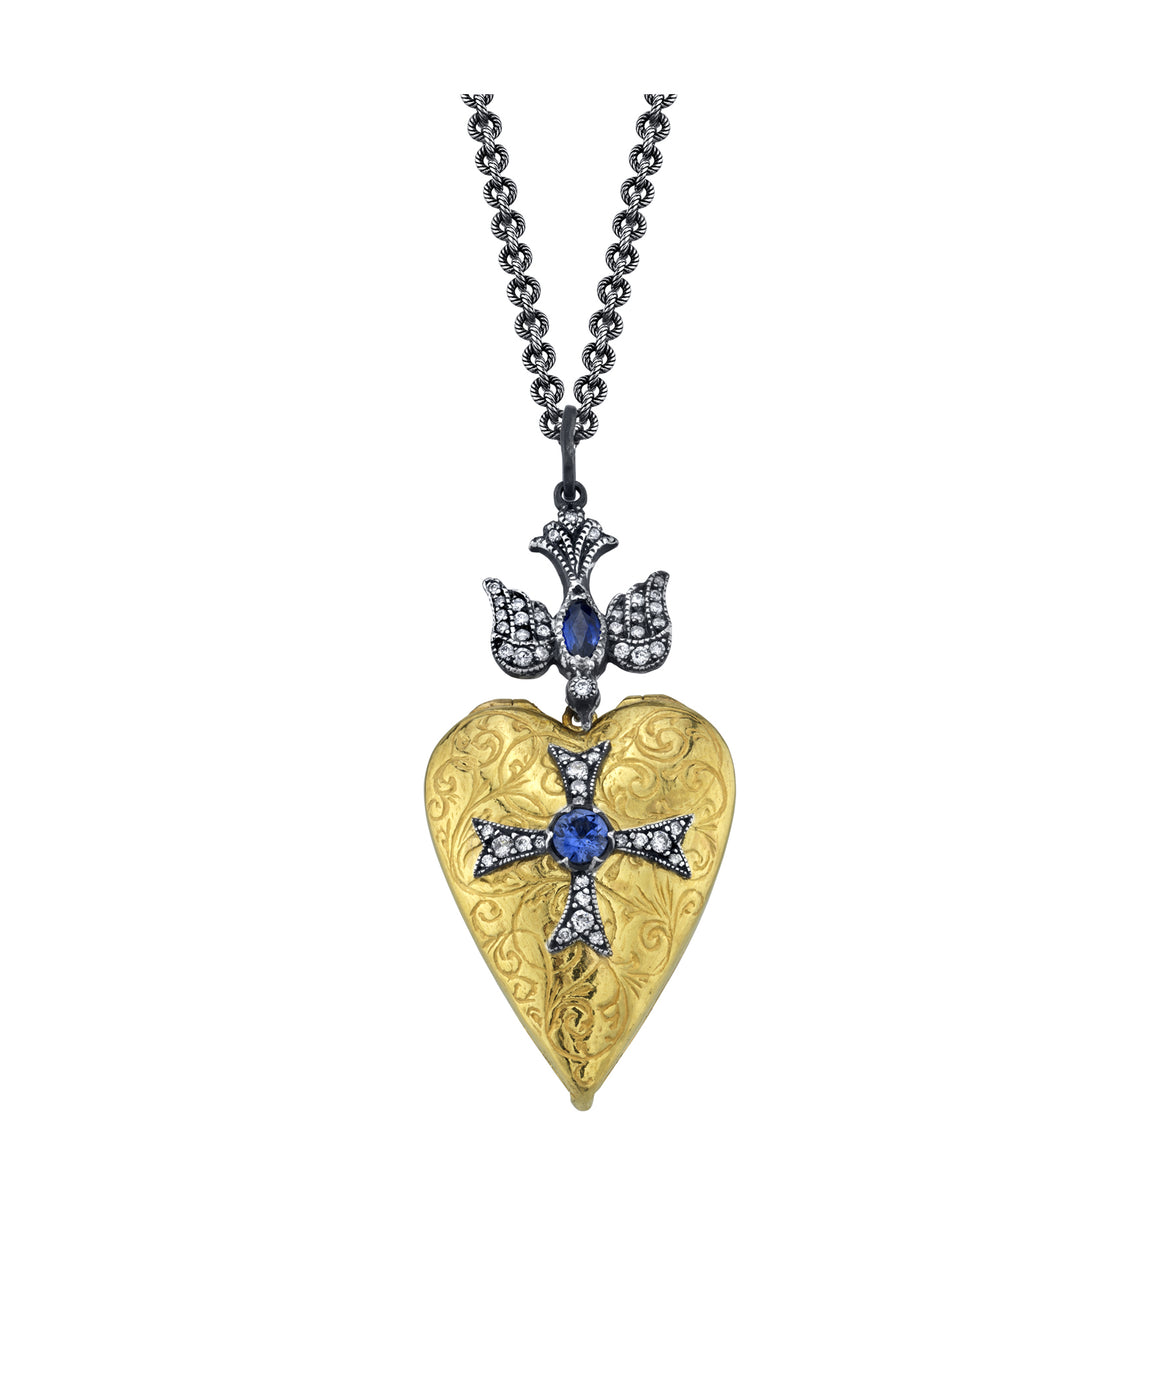 Heart locket with sapphire swallow